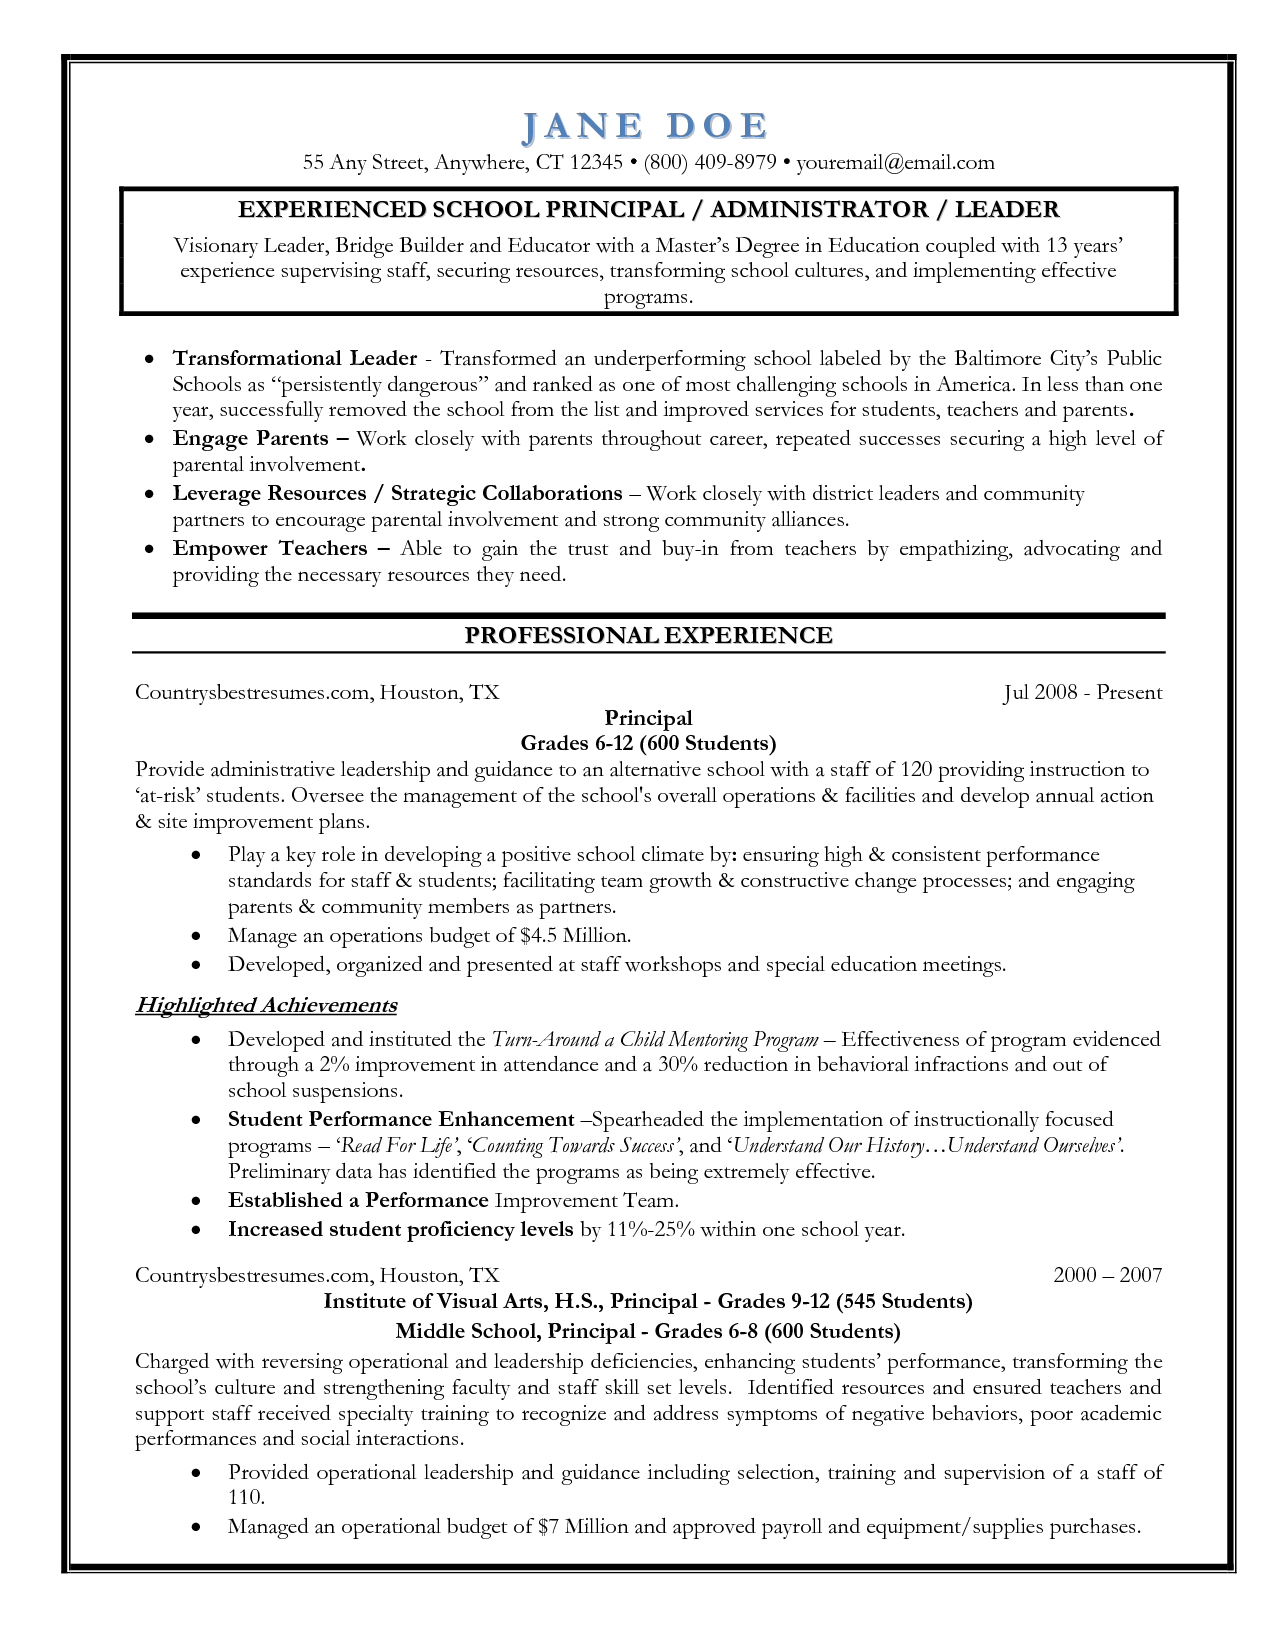 Administrative Resume Sample Entrylevel Assistant Principal Resume Templates  Senior Educator